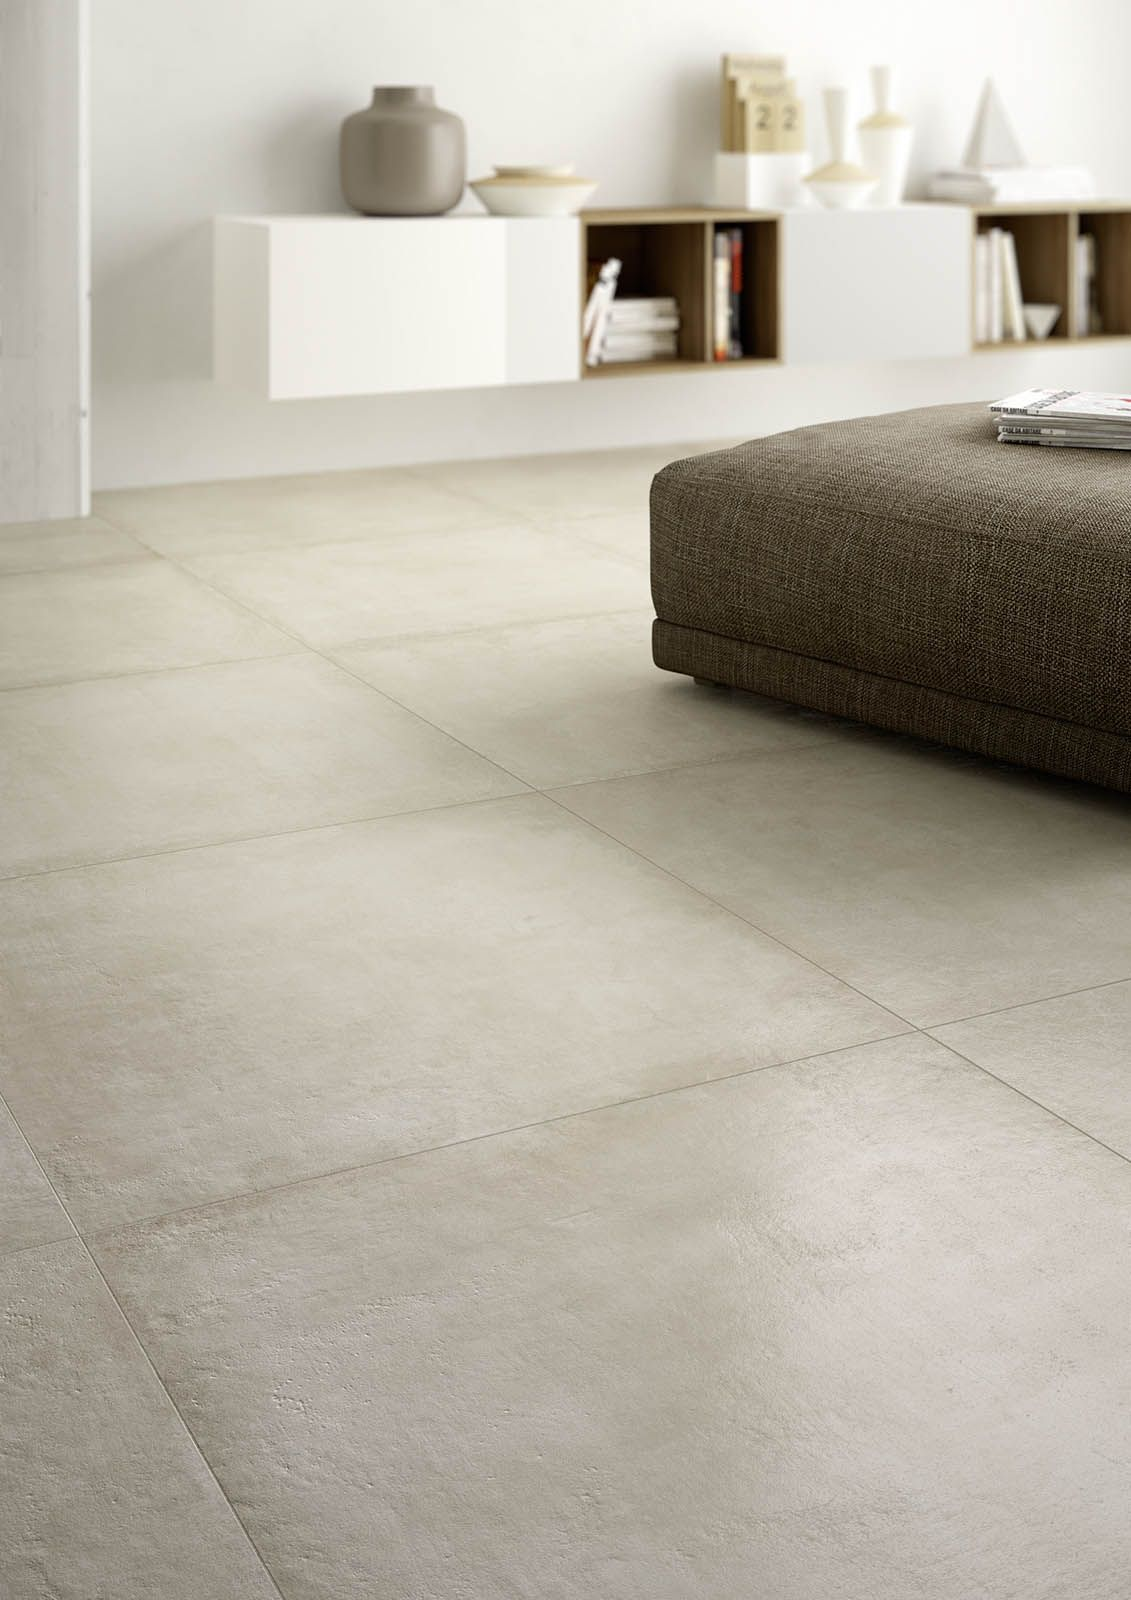 clays - interior floors porcelain tile | marazzi | mmiami